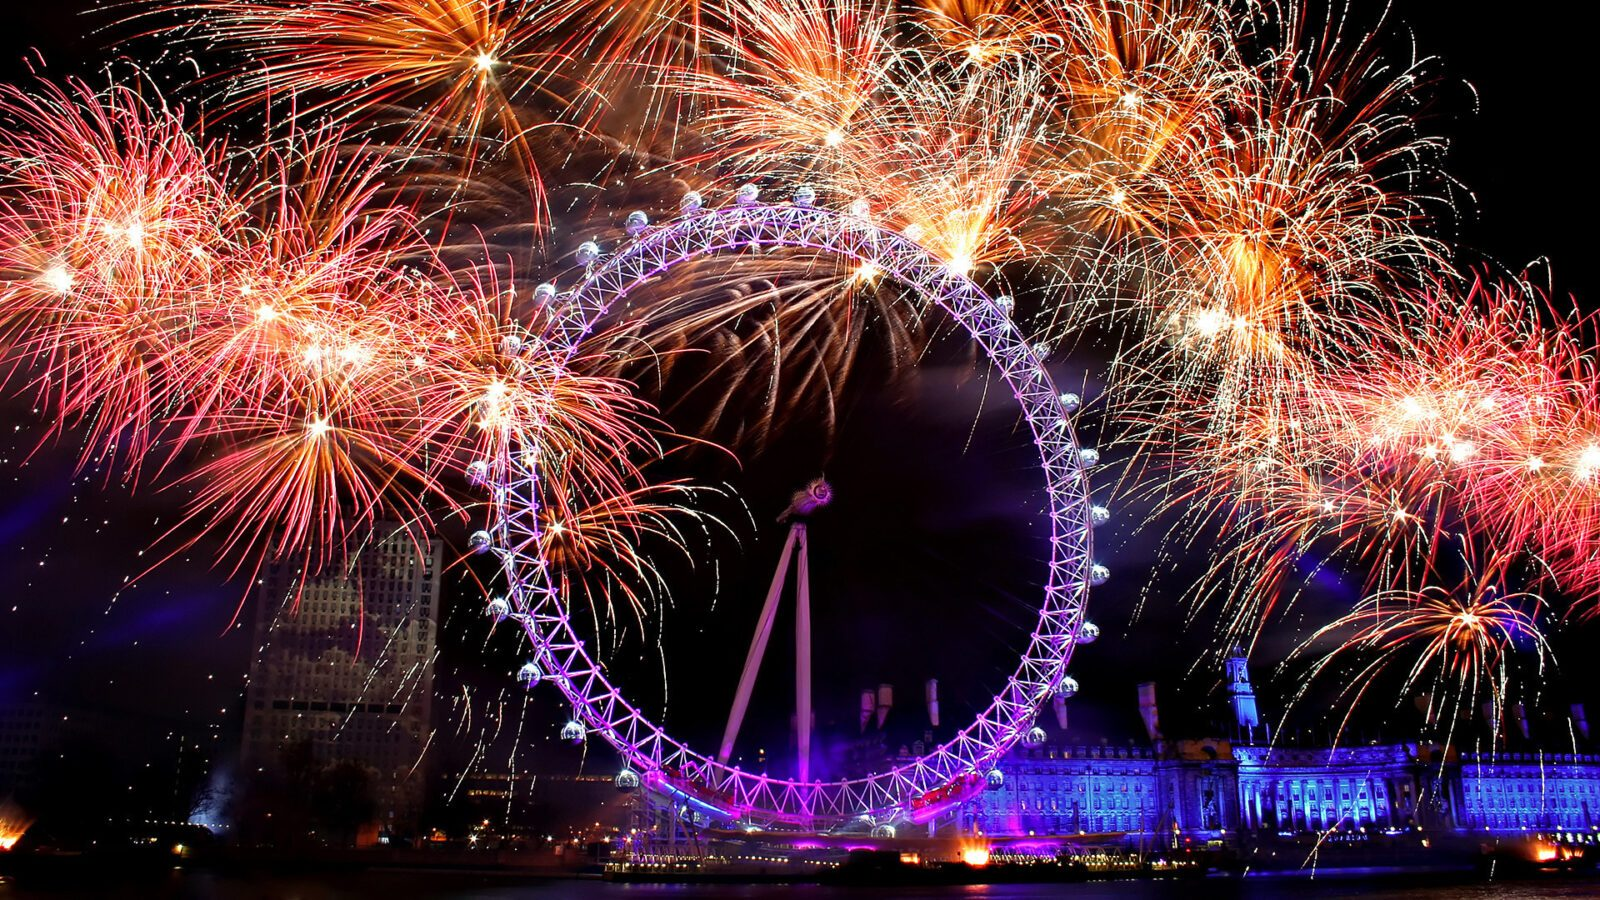 world england ferris wheel on a background of fireworks in london 058568 - Народный праздник в англии